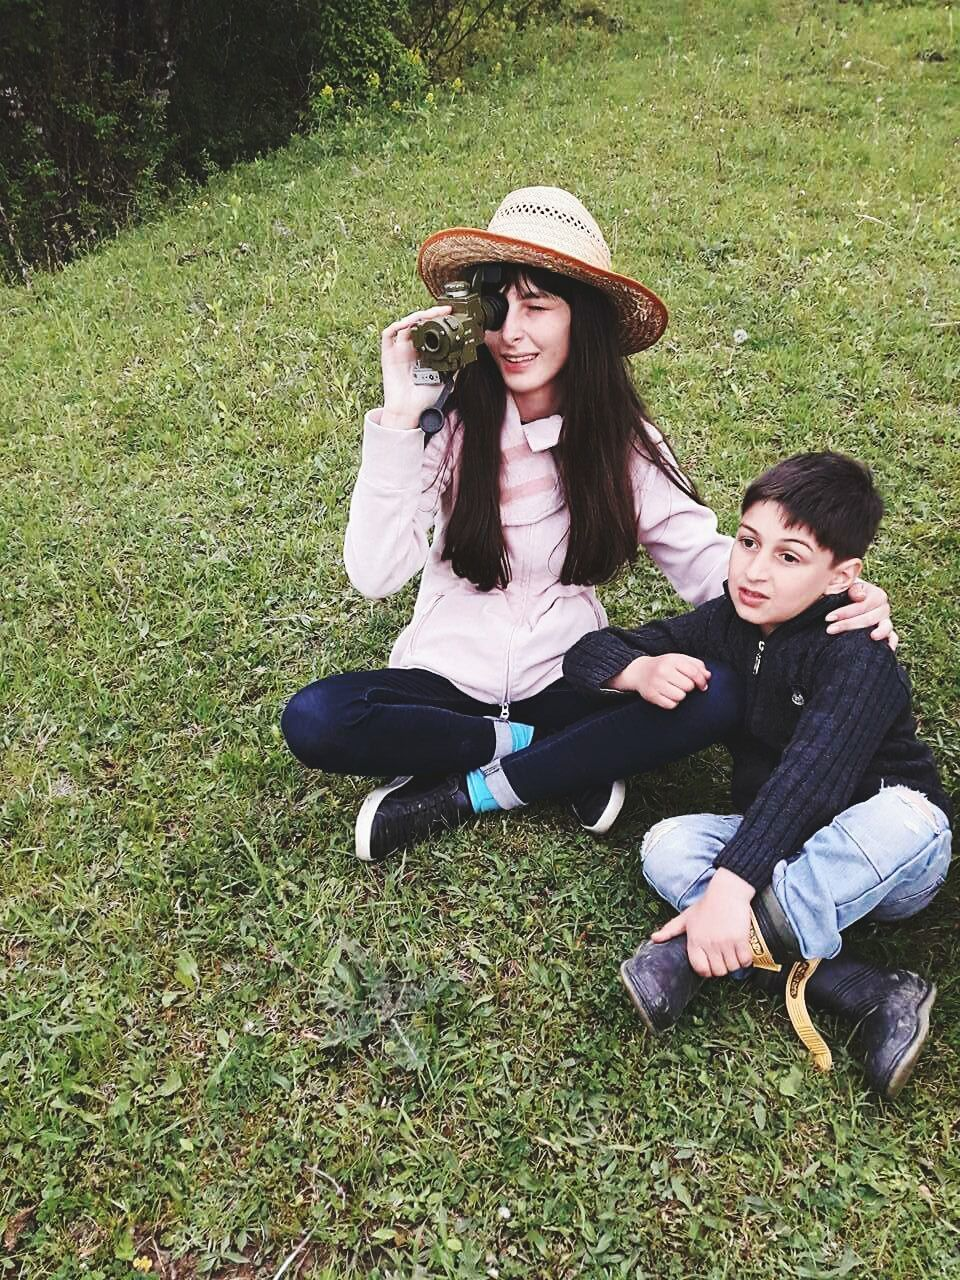 two people, real people, hat, casual clothing, full length, togetherness, lifestyles, leisure activity, grass, smiling, sitting, happiness, young women, teenage girls, young adult, day, women, outdoors, friendship, girls, wireless technology, bonding, childhood, nature, technology, beauty in nature, people